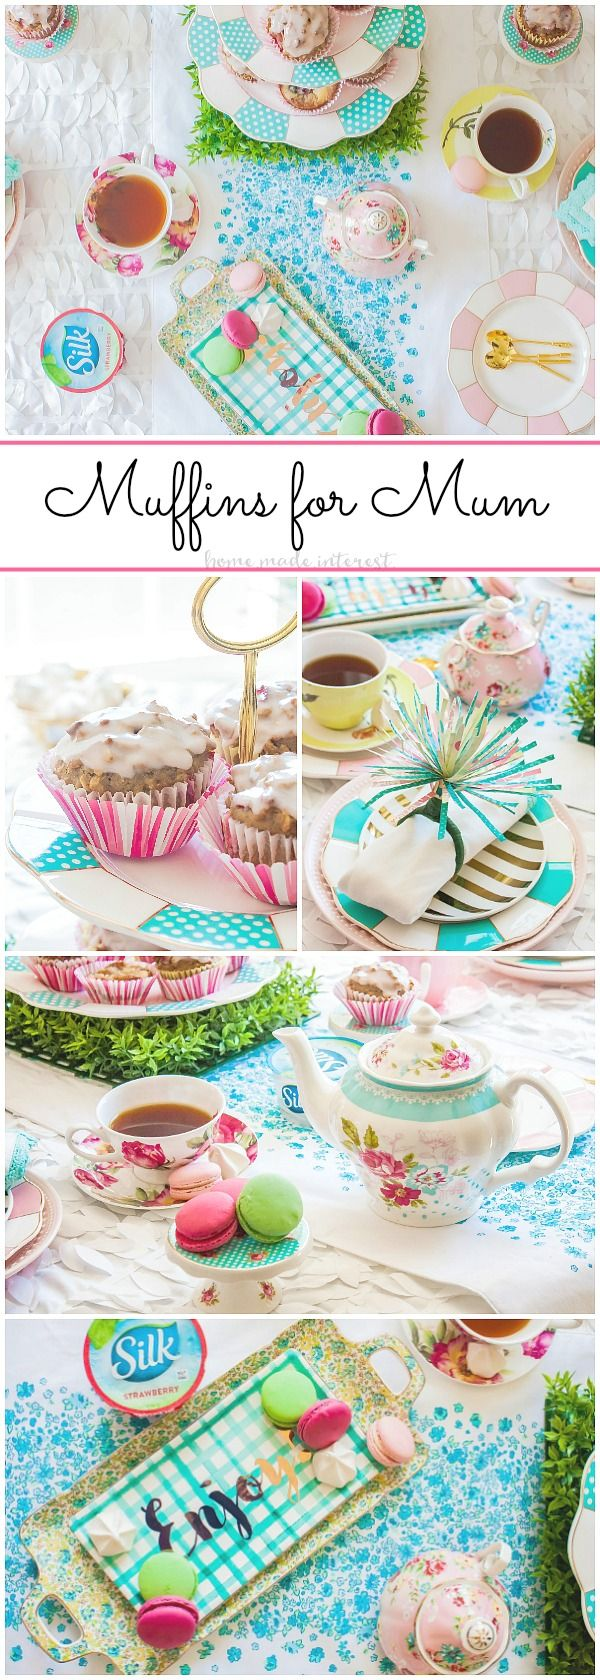 It's never to early to start planning for Mother's Day! Who can resist dairy-free muffins with Mum?!